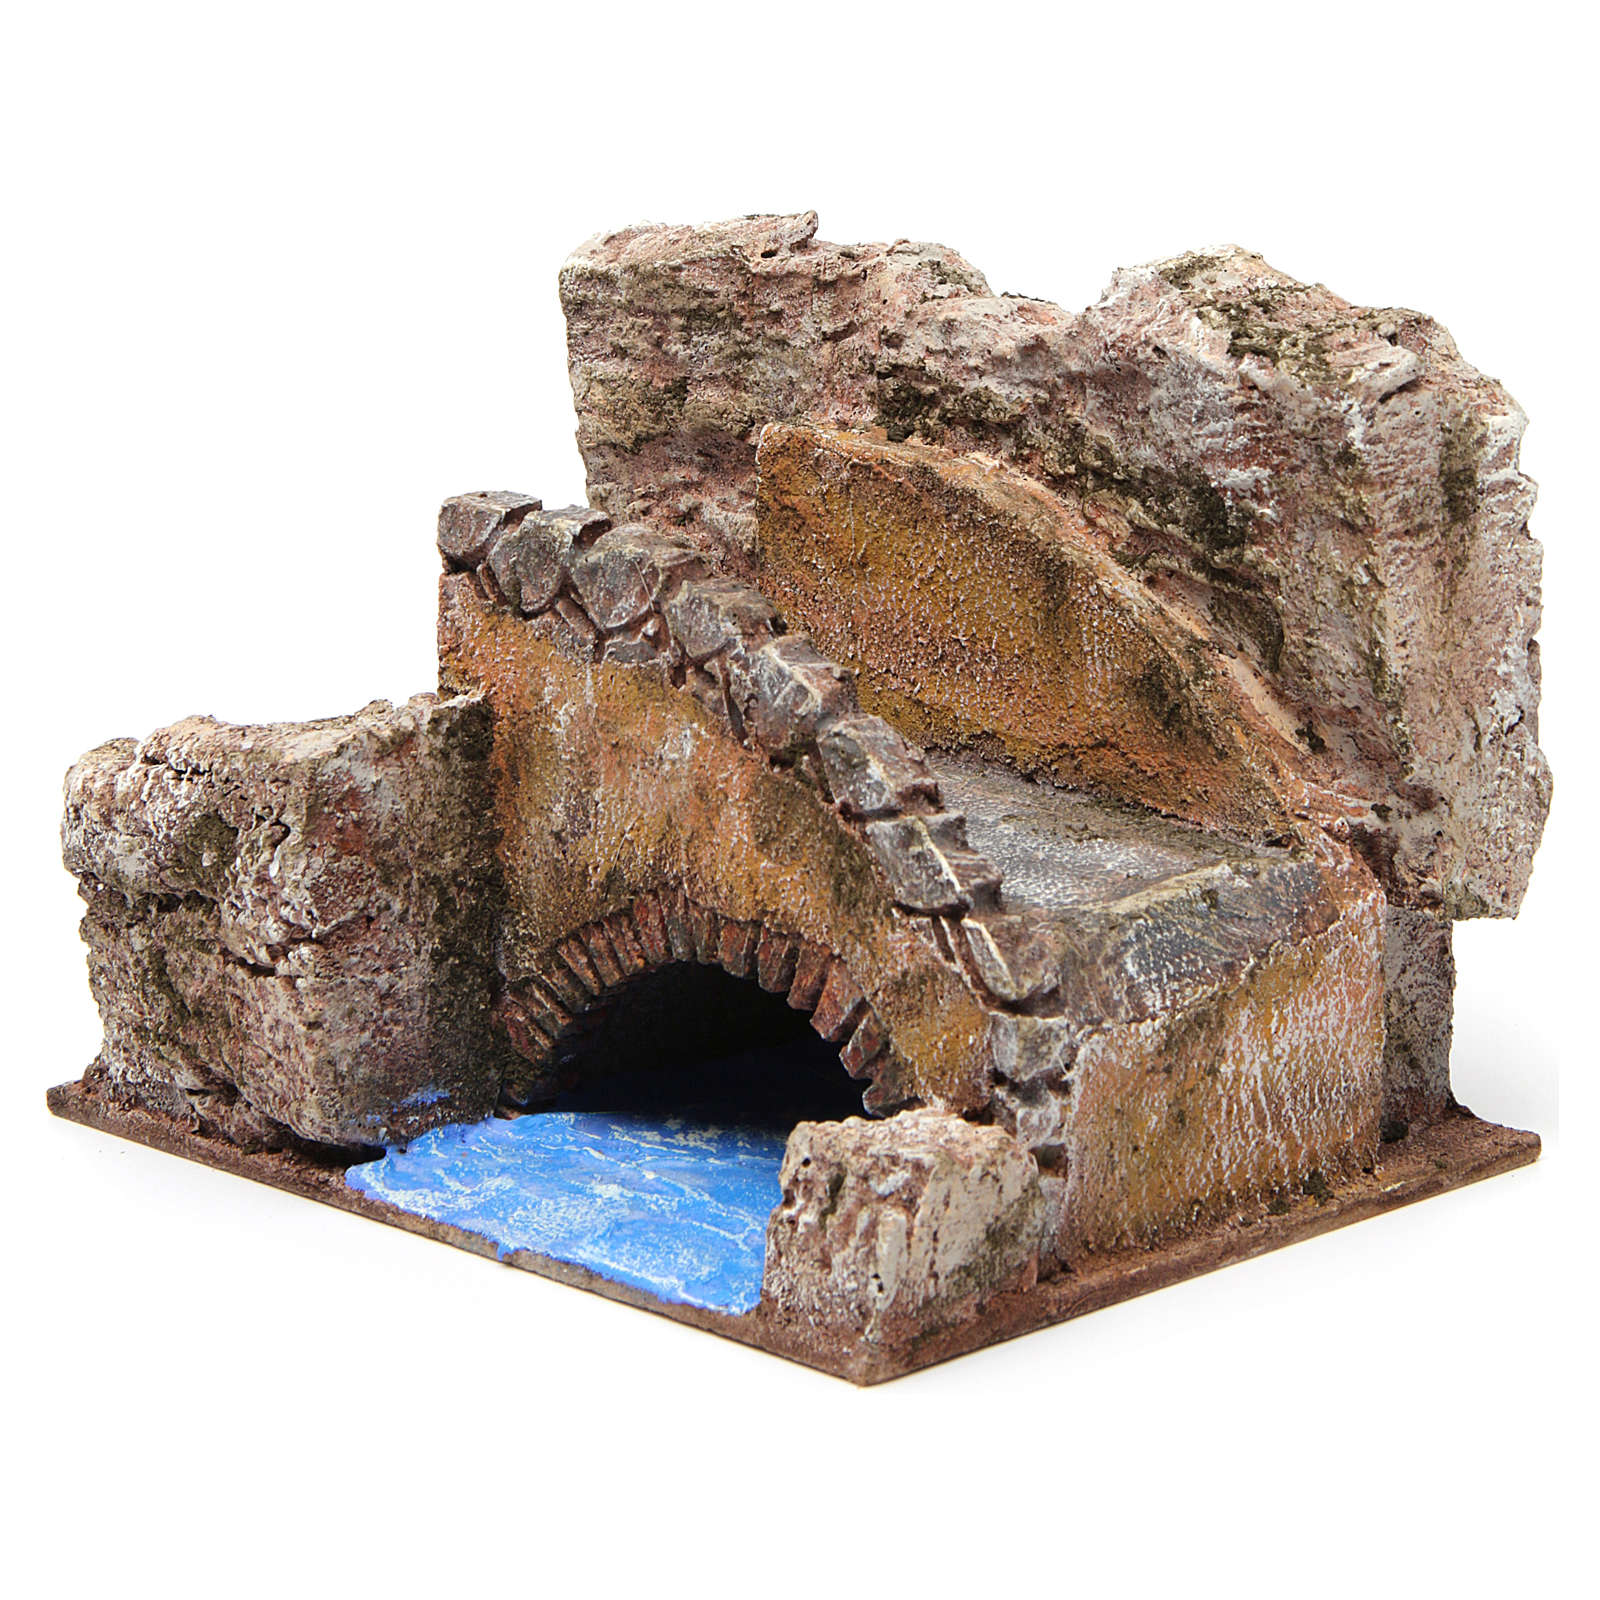 Stream with stairs and bridge for 10 cm nativity scene 4